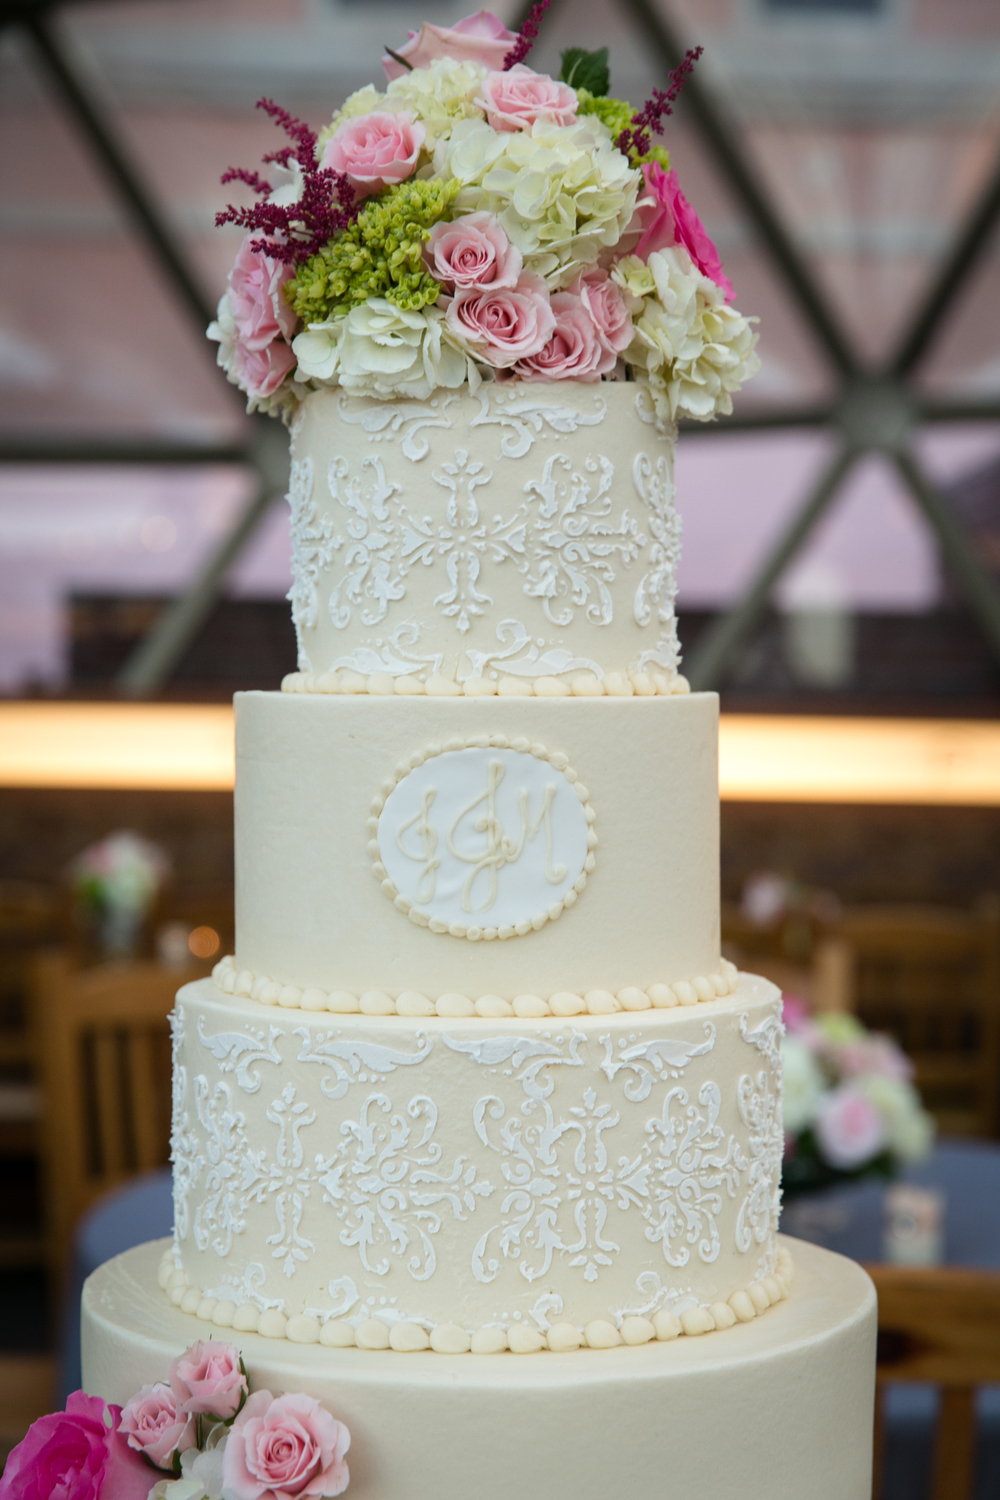 custom-wedding-cake-cream-white-damask-lace-texture-monogram2-sugarbeesweets.jpg